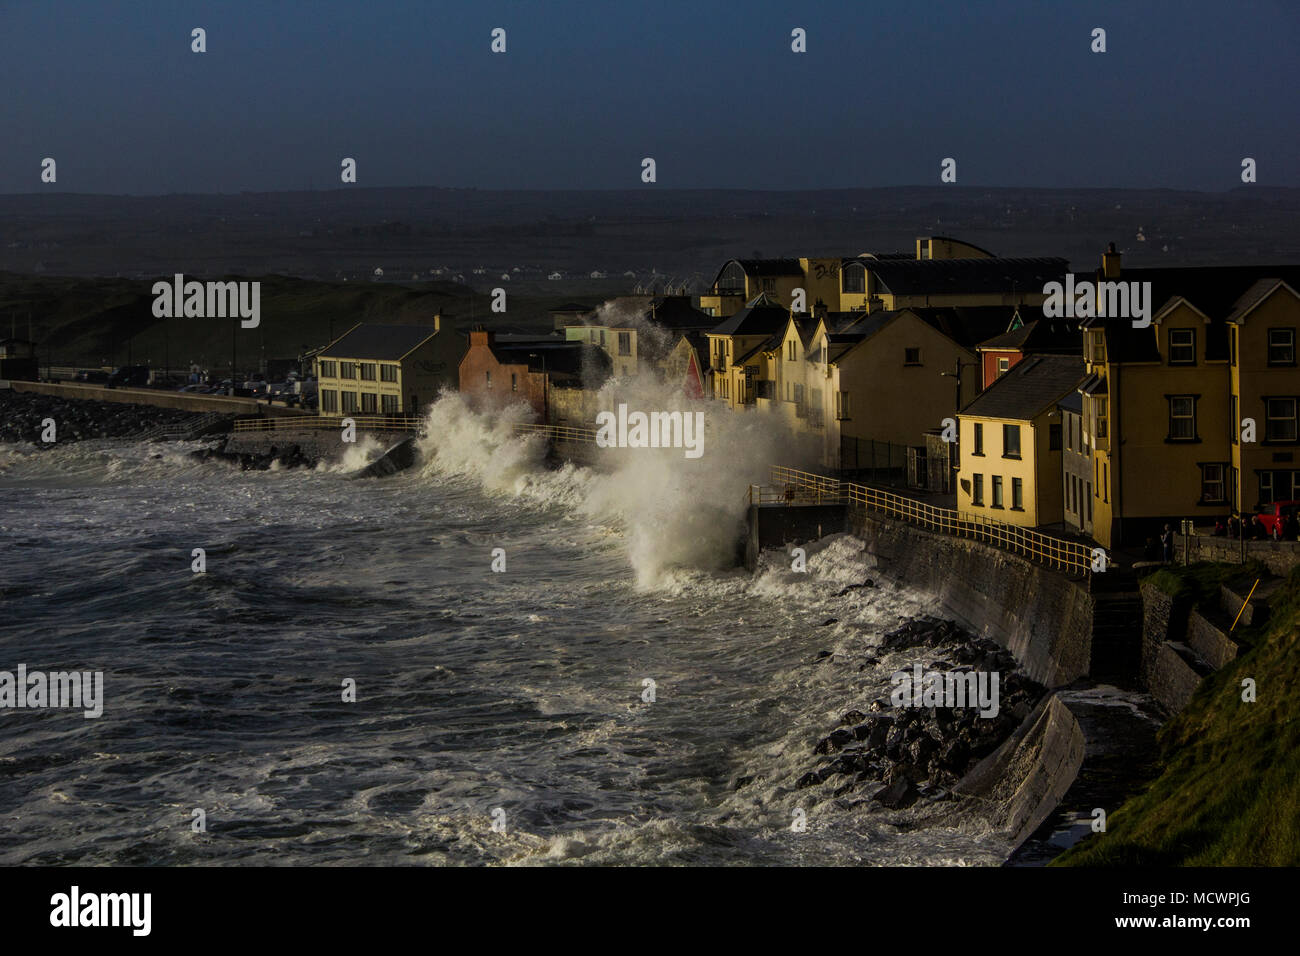 Lahinch seafront property and promenade getting hit by wave at high tide - Stock Image